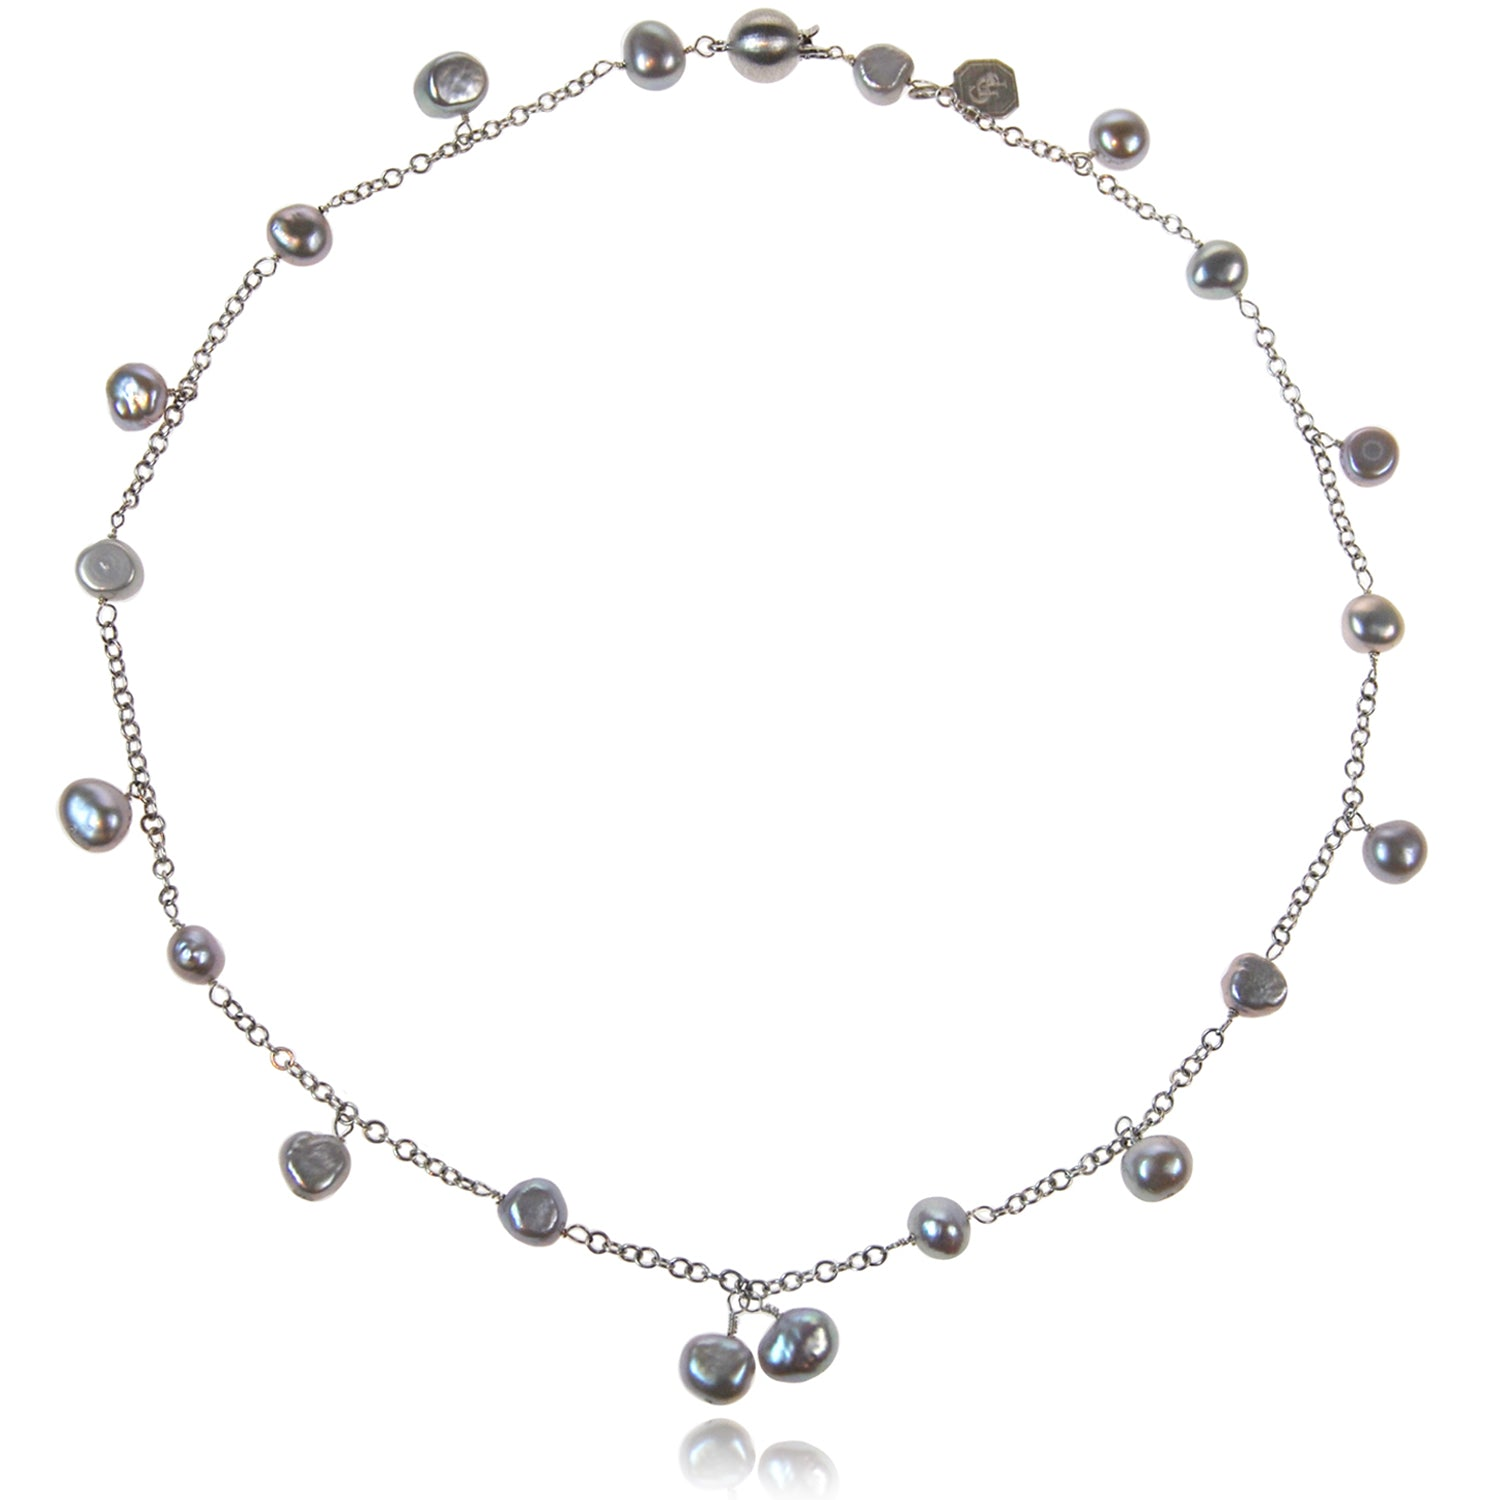 Biwa Pearl and Silver Chain Necklace in Grey